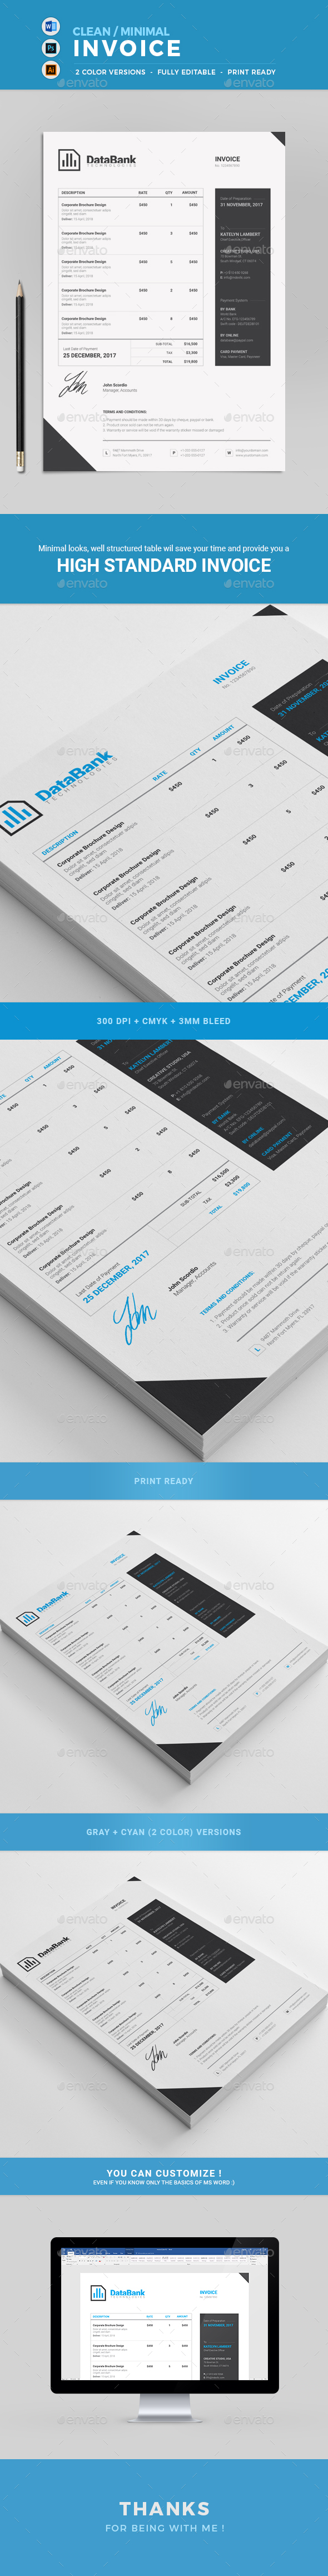 GraphicRiver Invoice 21024526